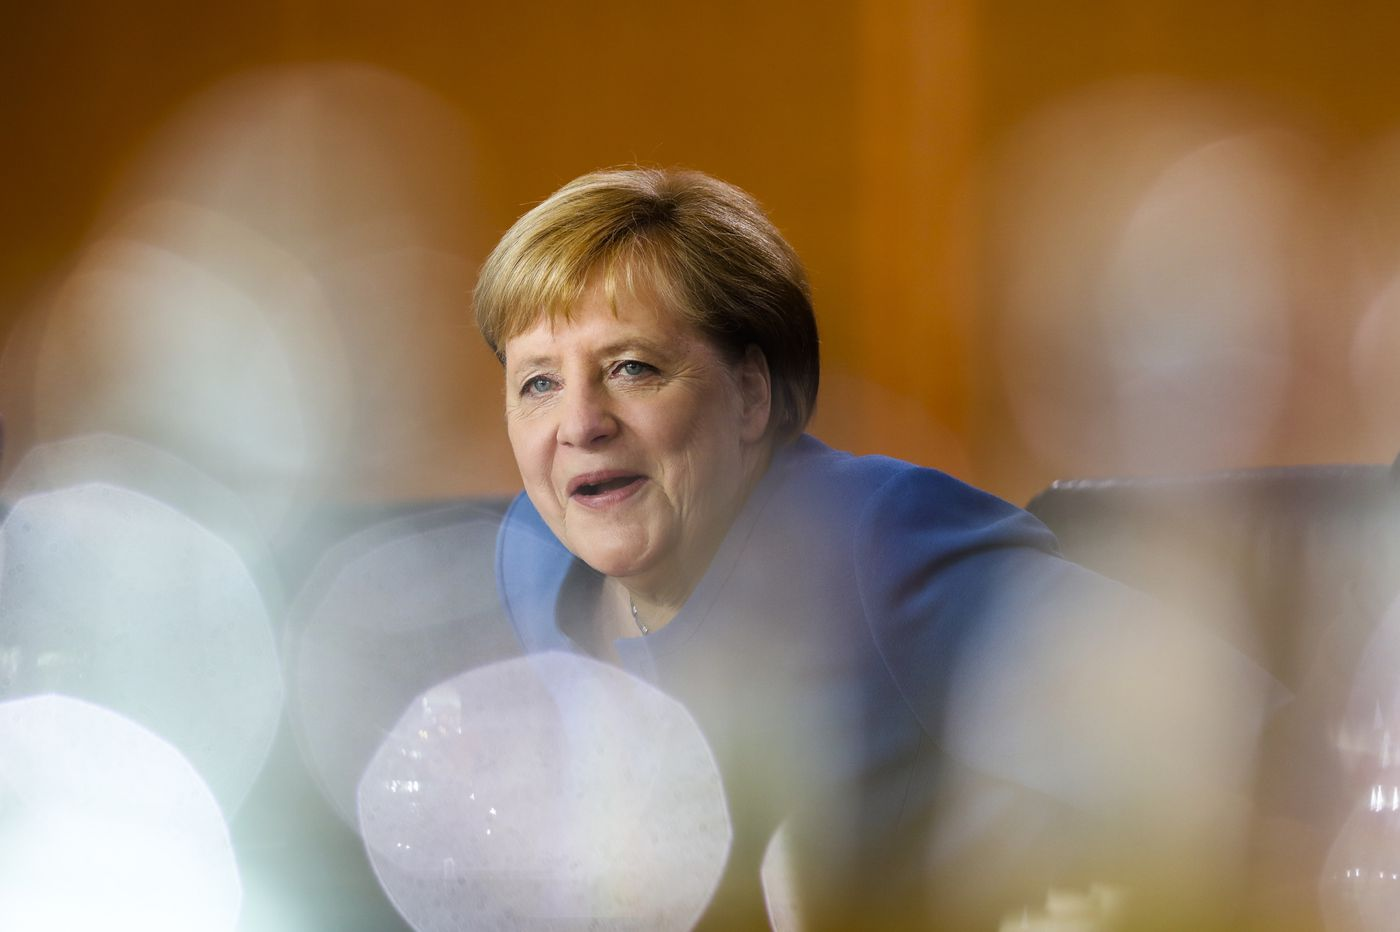 Germany's Merkel coalition seals $60 billion deal to fight climate change